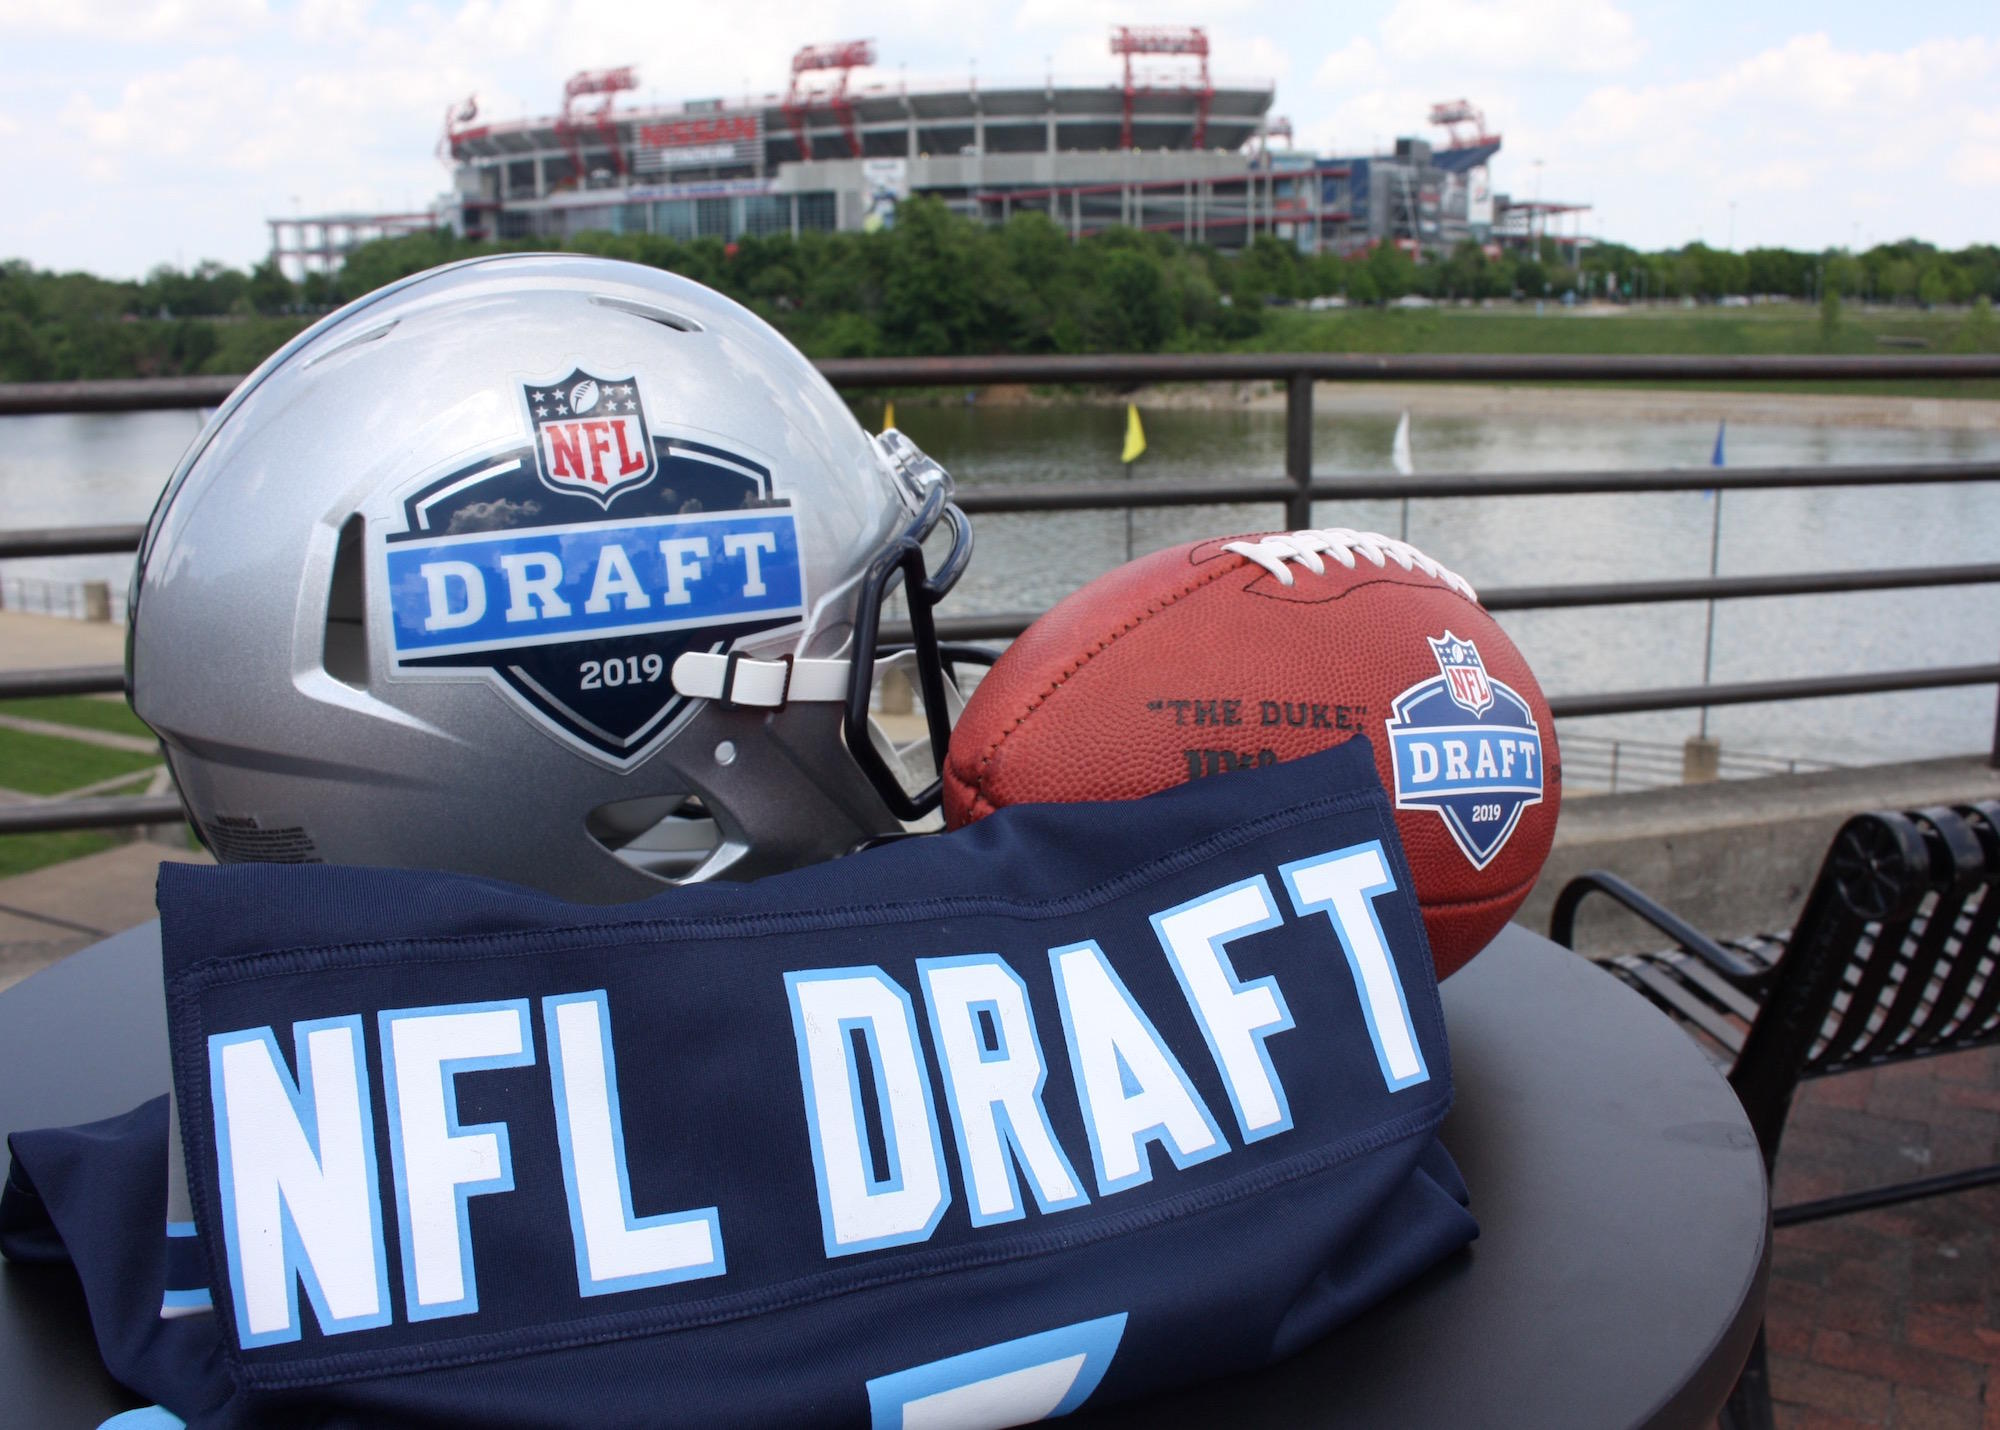 Relax and Breathe - the NFL Draft Will Accomplish Its Purpose for Green Bay